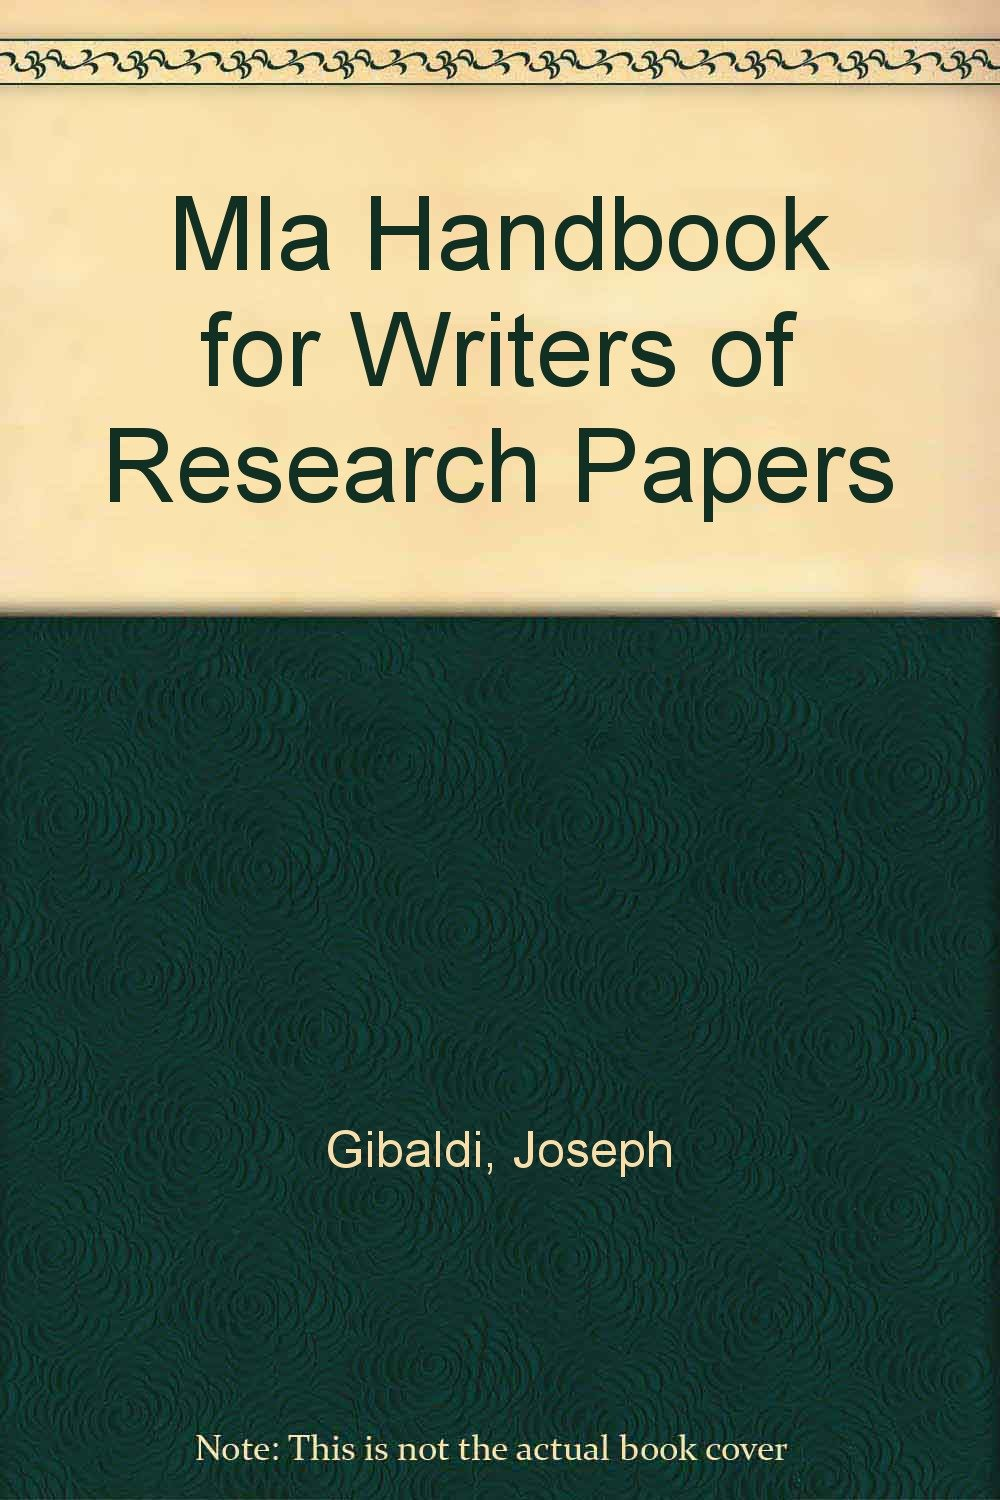 009 Mla Handbook For Writers Of Research Papers 8th Edition Paper Unique Pdf Free Download Full